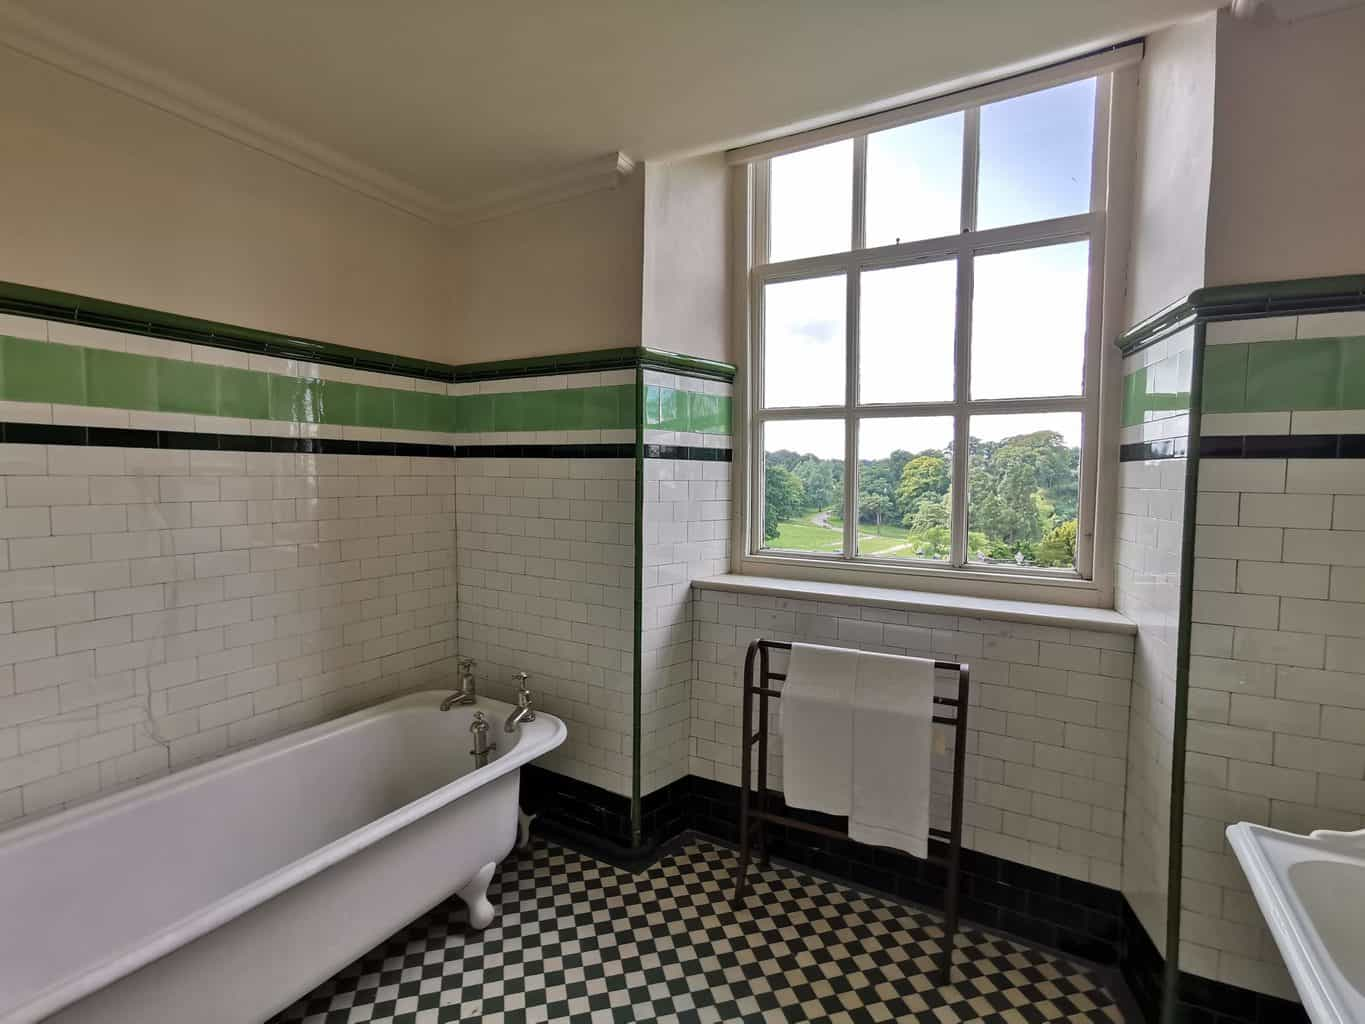 Bathrooms Throughout History